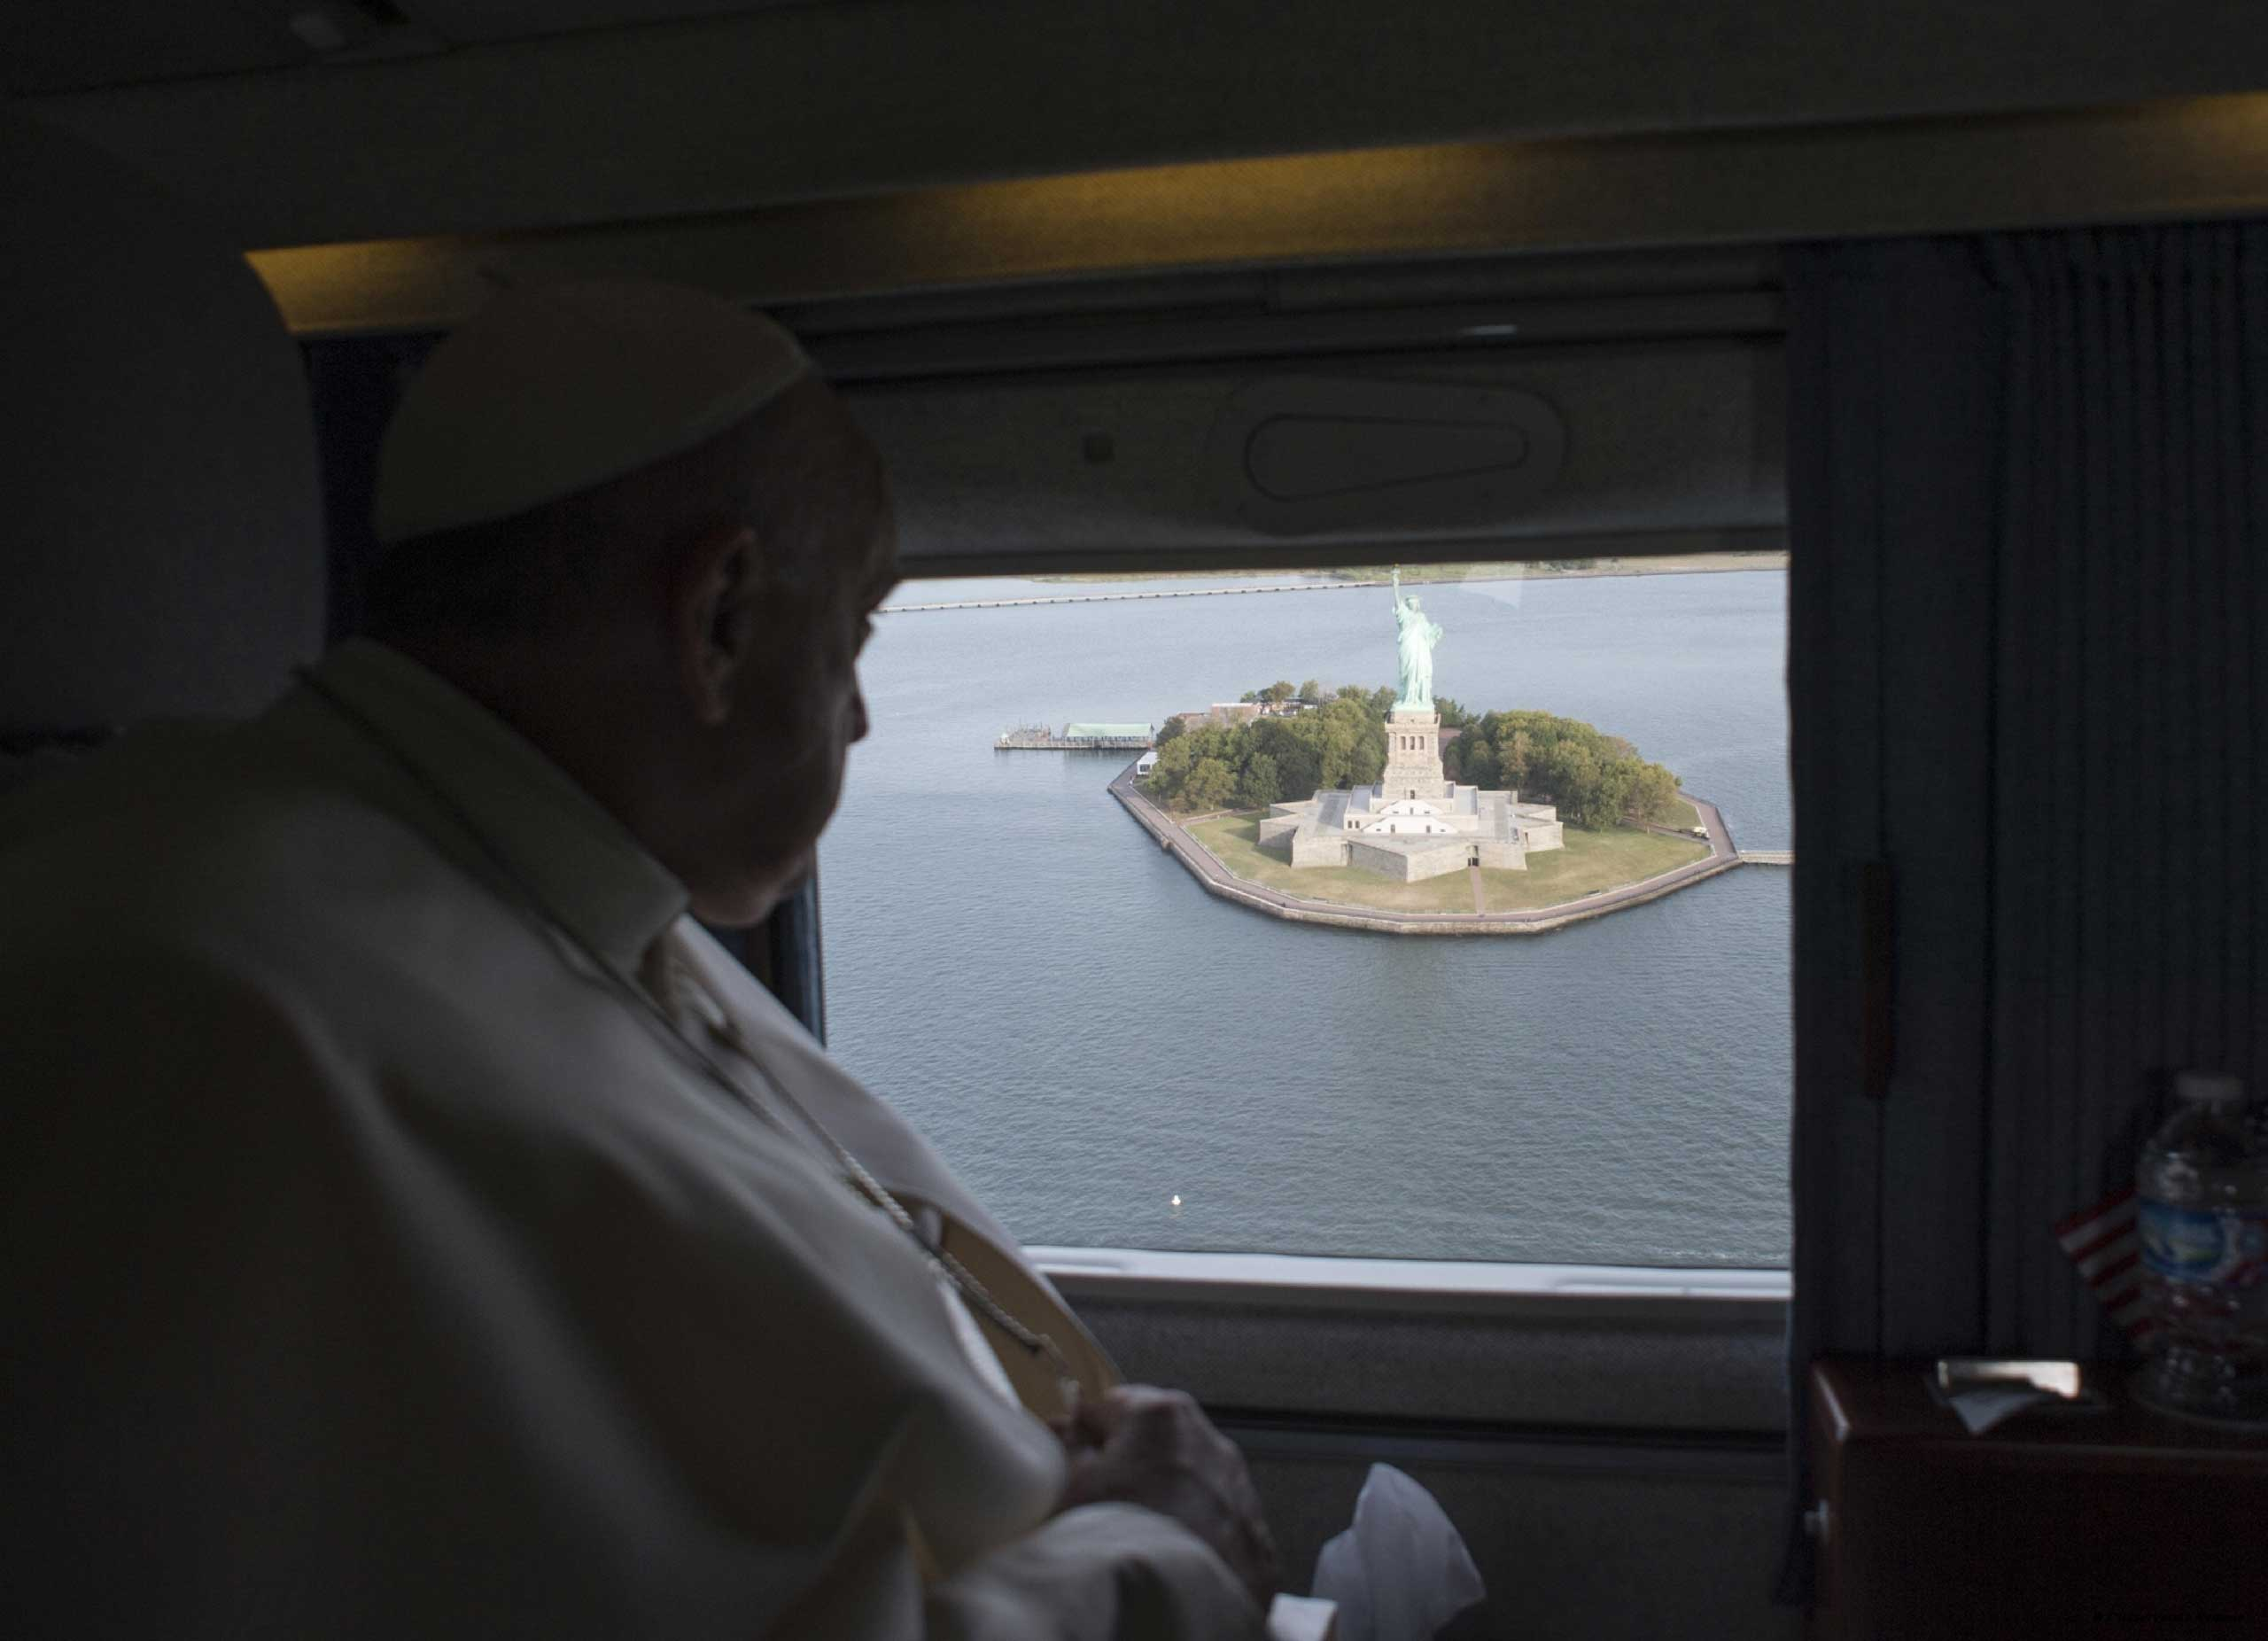 Pope Francis looks at the Statue of Liberty from the window of a helicopter on his way to the John F. Kennedy International Airport, in New York City, on Sept. 26, 2015.